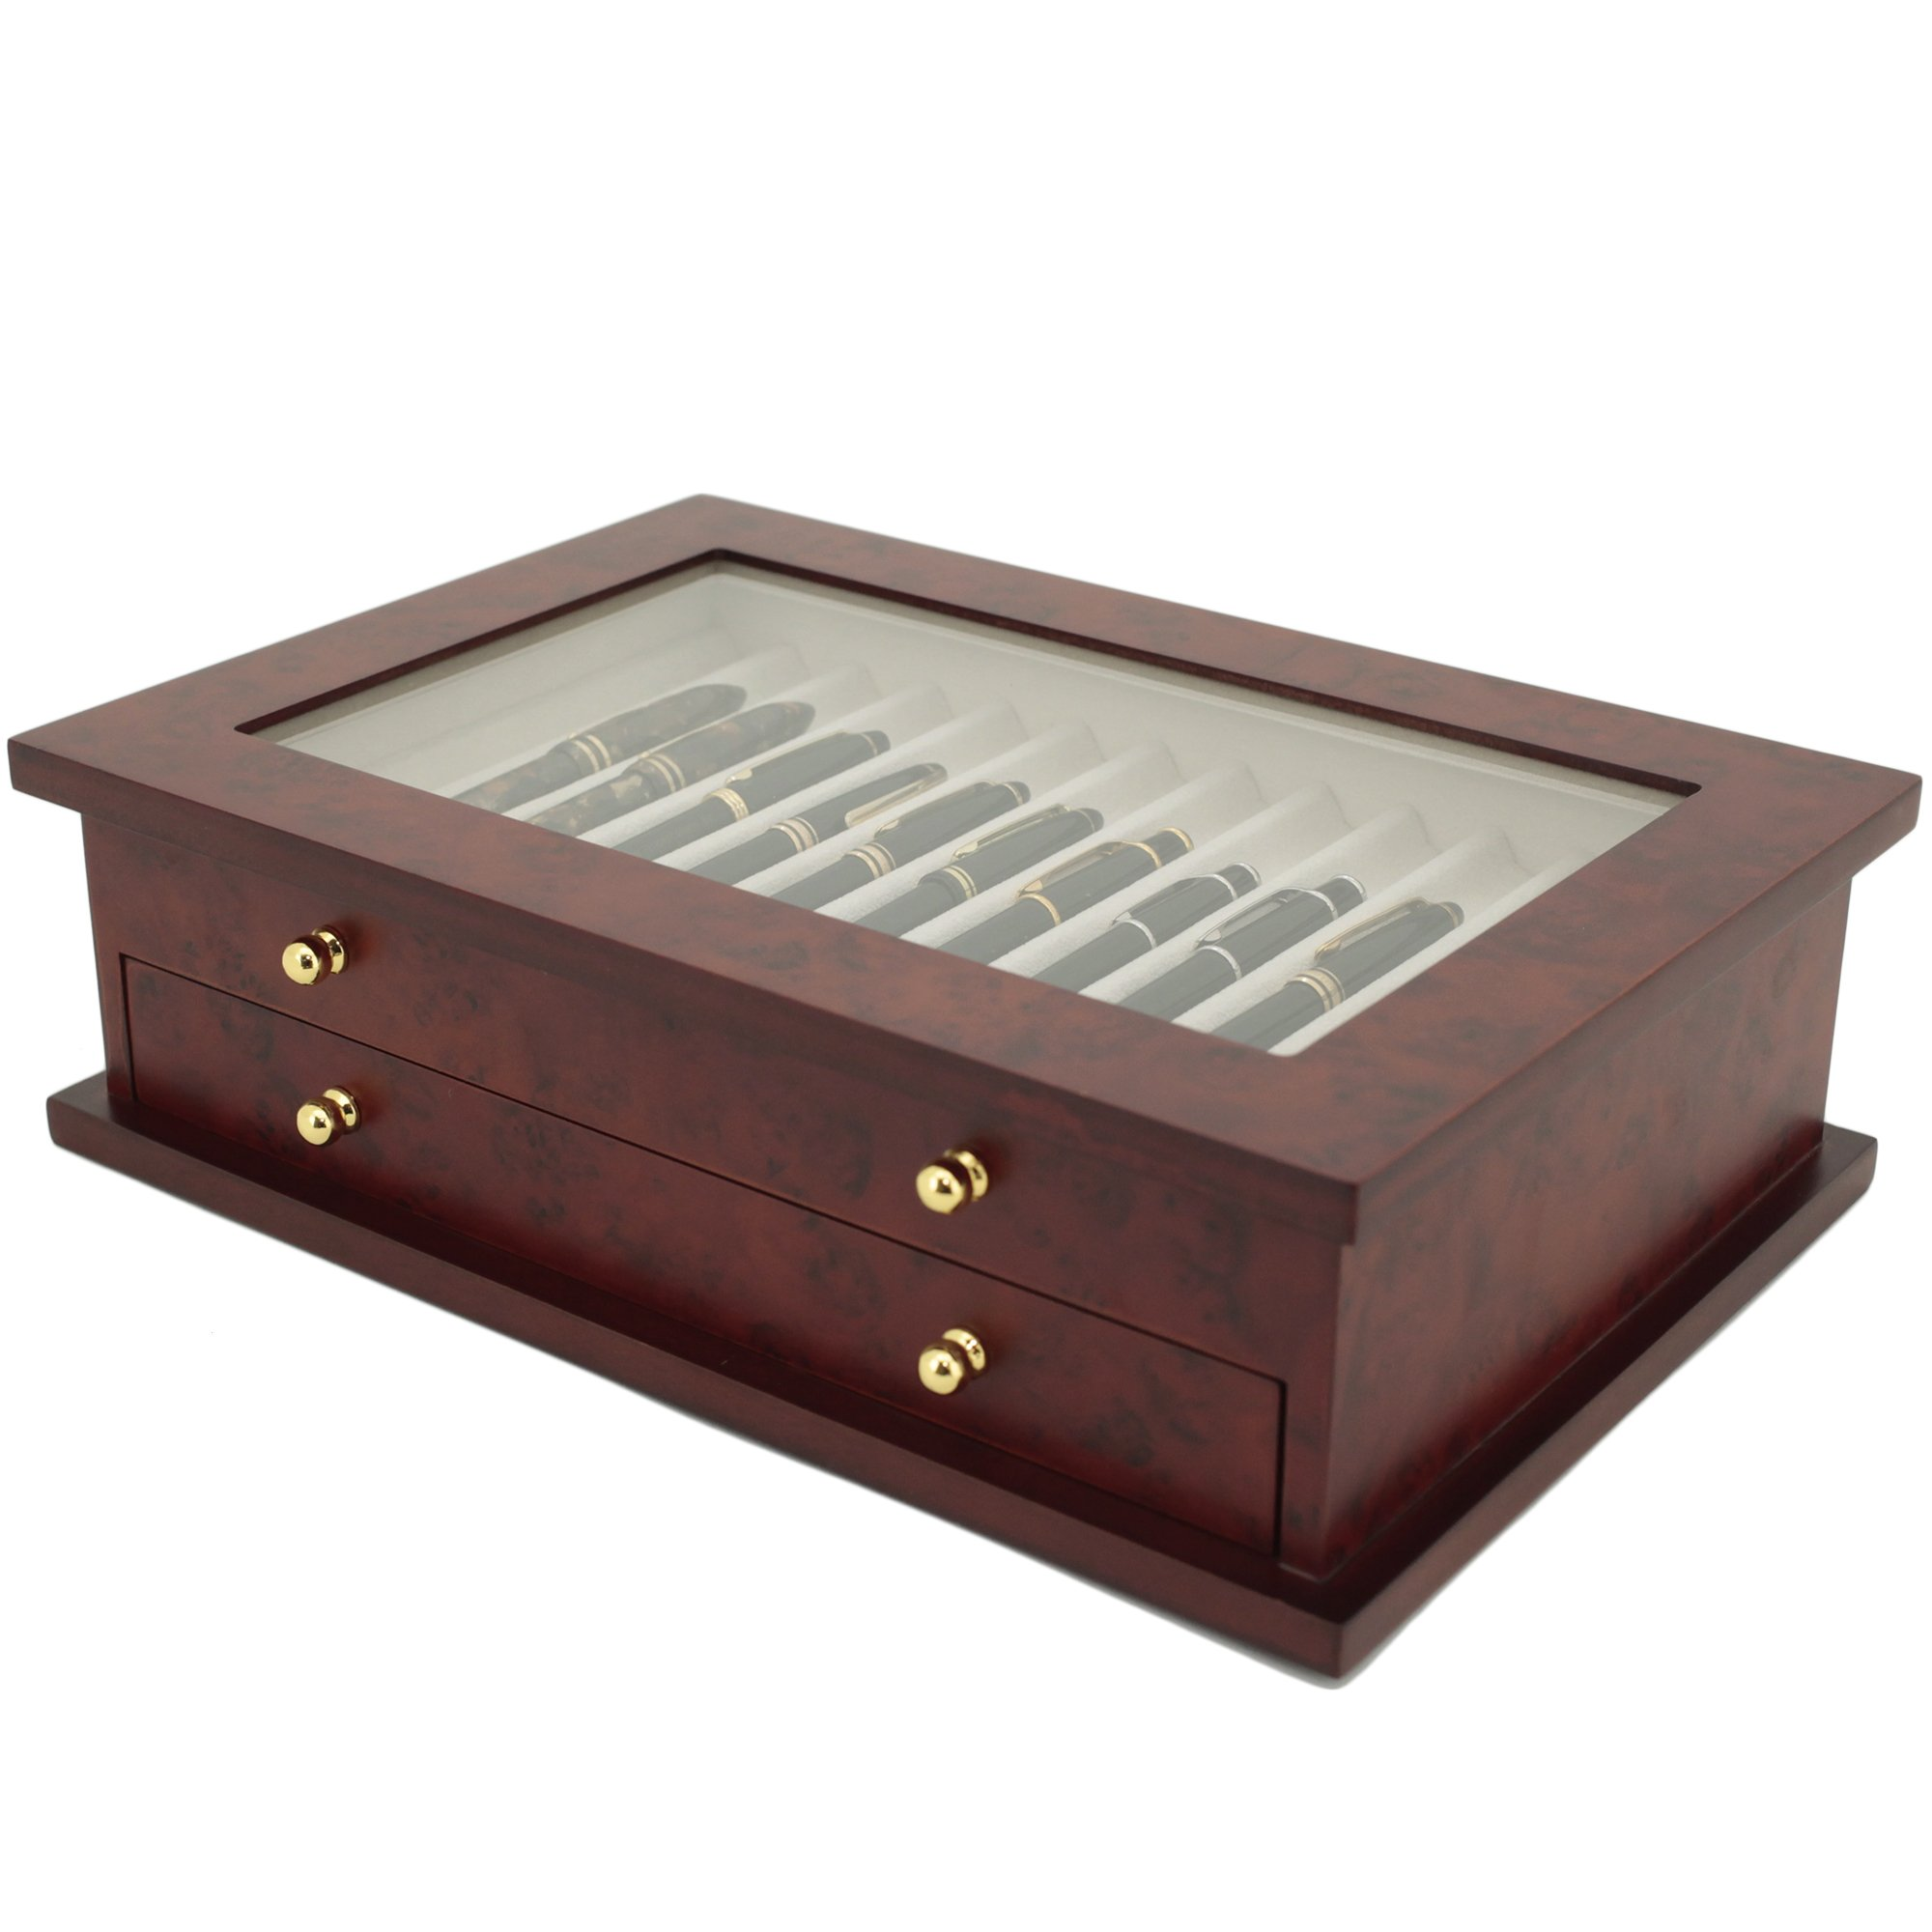 Pen Box 26 Fountain Pens Writing Instruments Wood Constructed Glass Display Case (Burlwood) by Tech Swiss (Image #2)